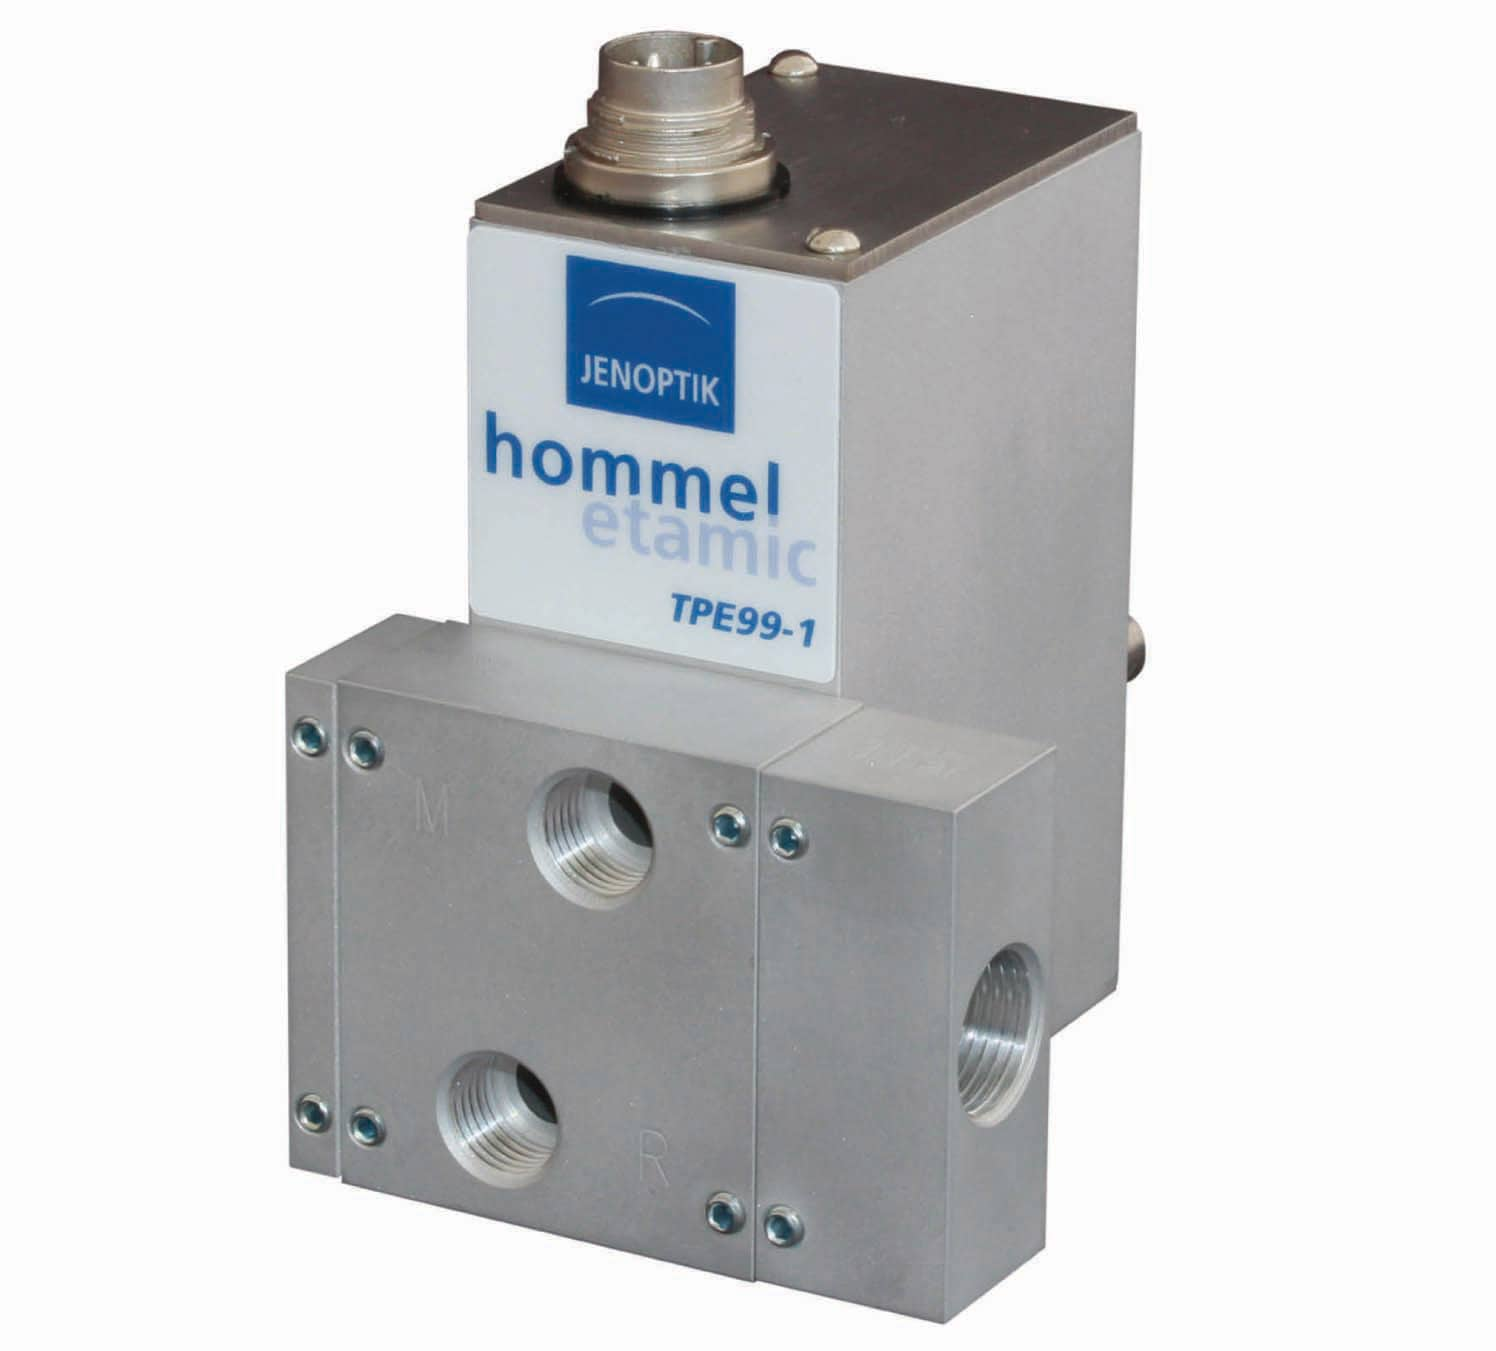 The Hommel-Etamic TPE99 forms the core element of our pneumatic measuring systemsand suitable for all measuring tasks in production